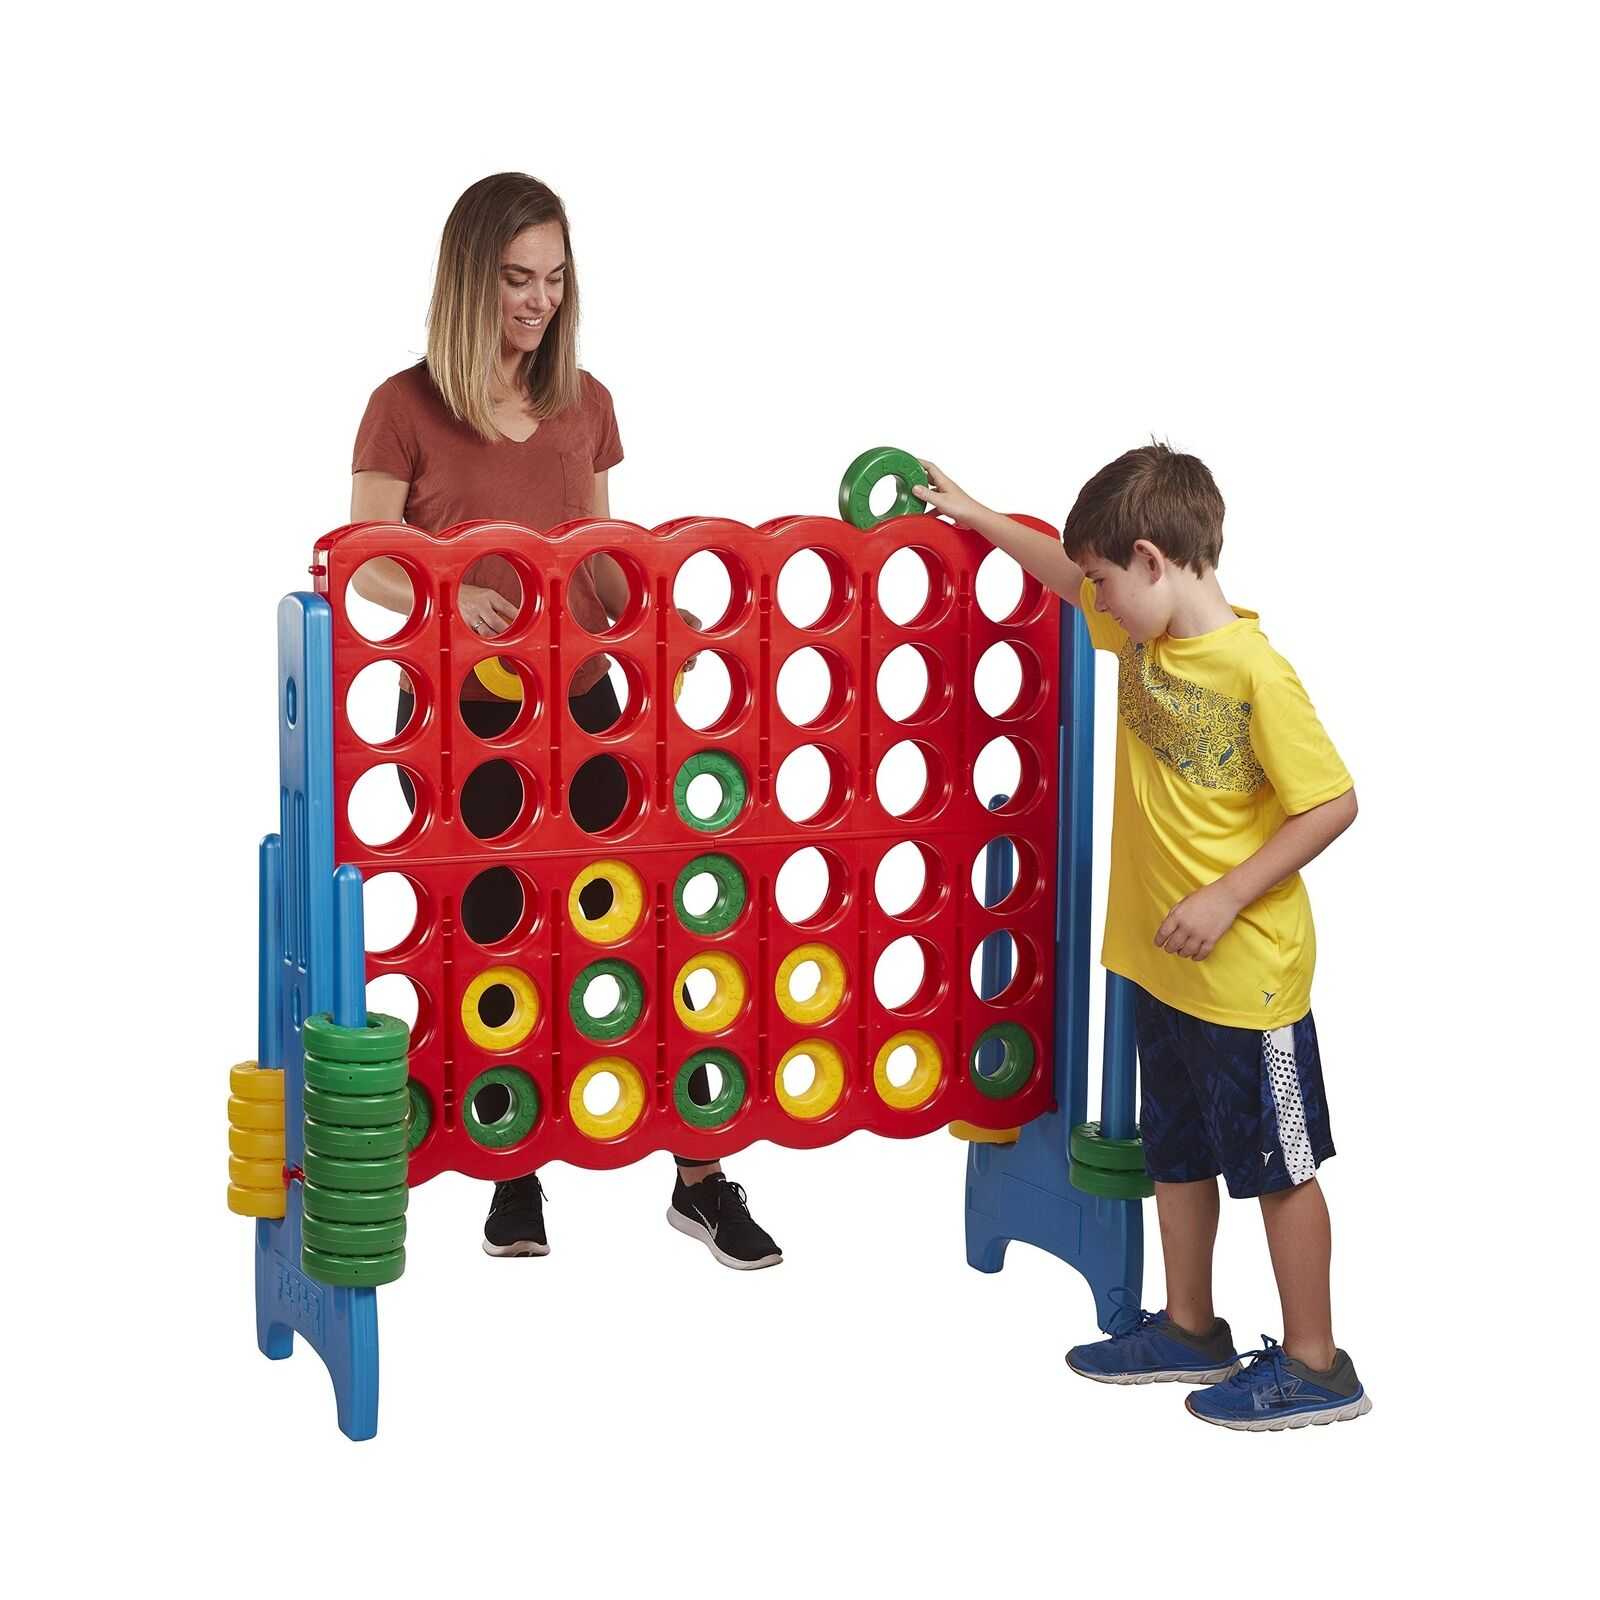 Jumbo 4-To-Score Game Set - Giant Größed Fun for Kids and Adults - 4 Feet Tall